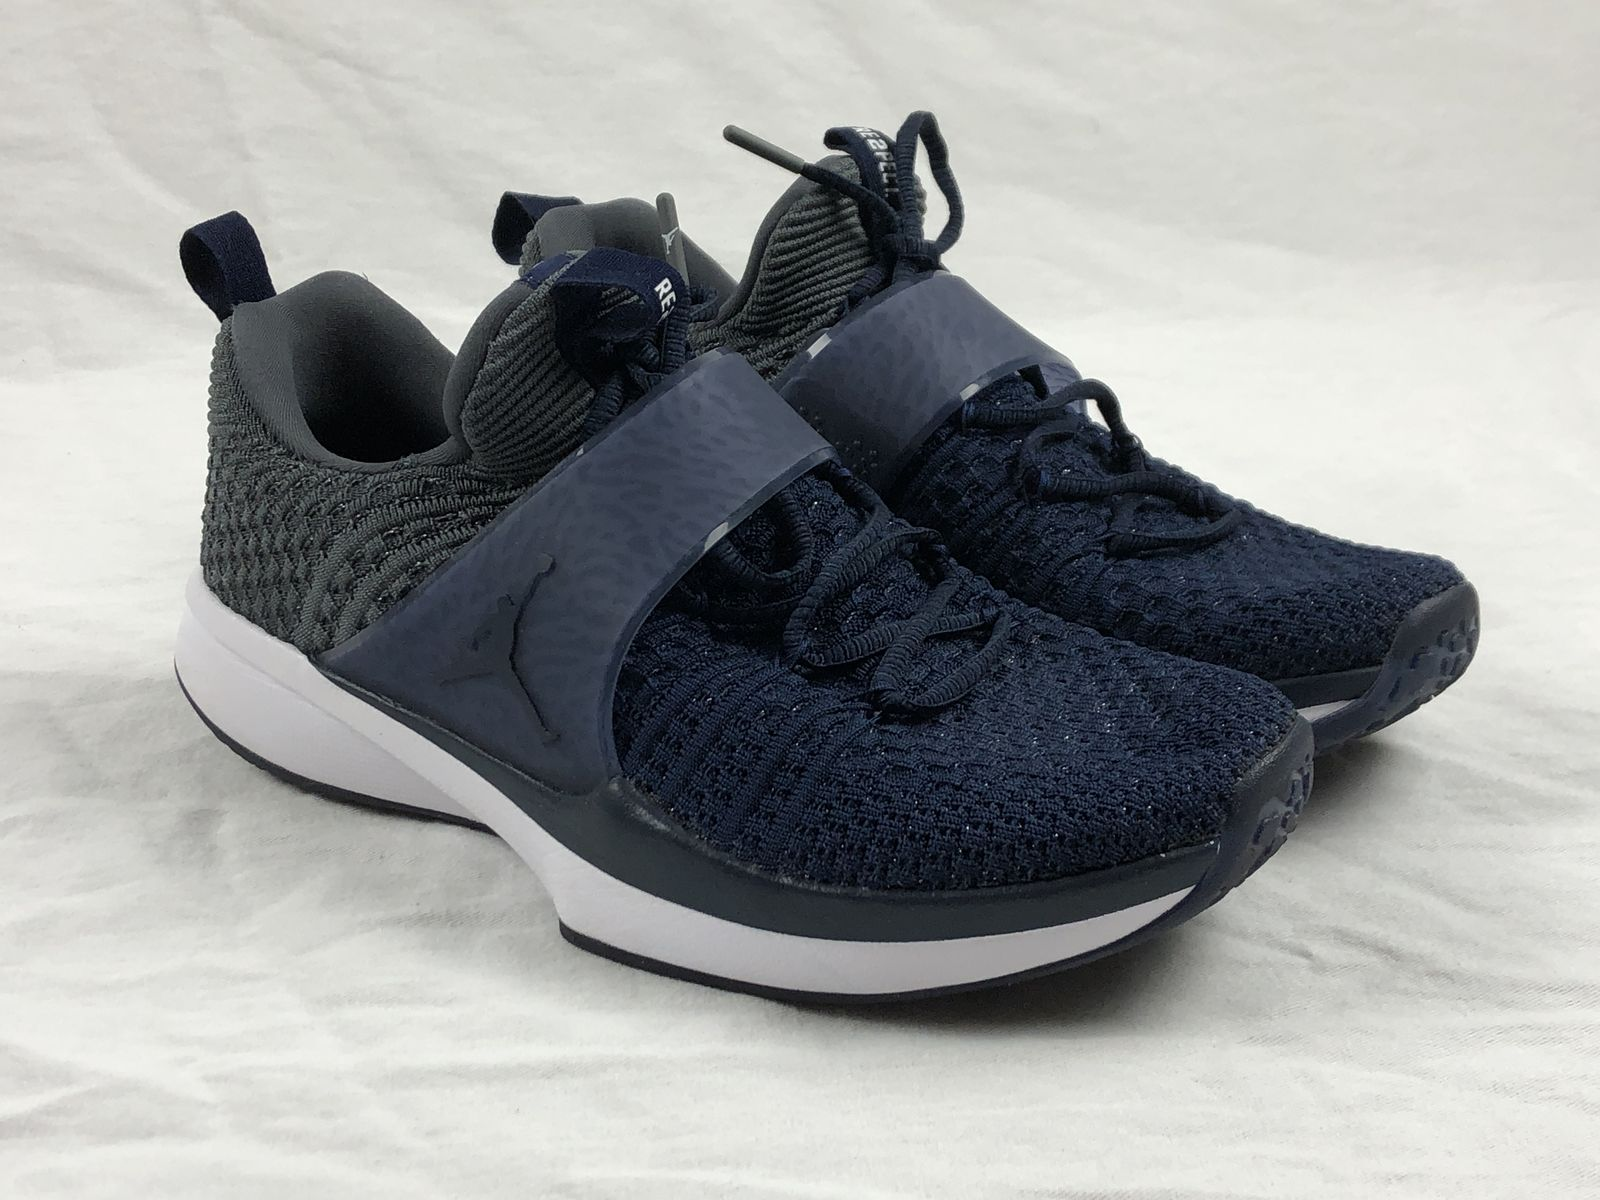 4cf7d7034281f8 Details about Jordan Trainer 2 Flyknit - Blue Basketball Shoes (Men s 9.5)  - Used